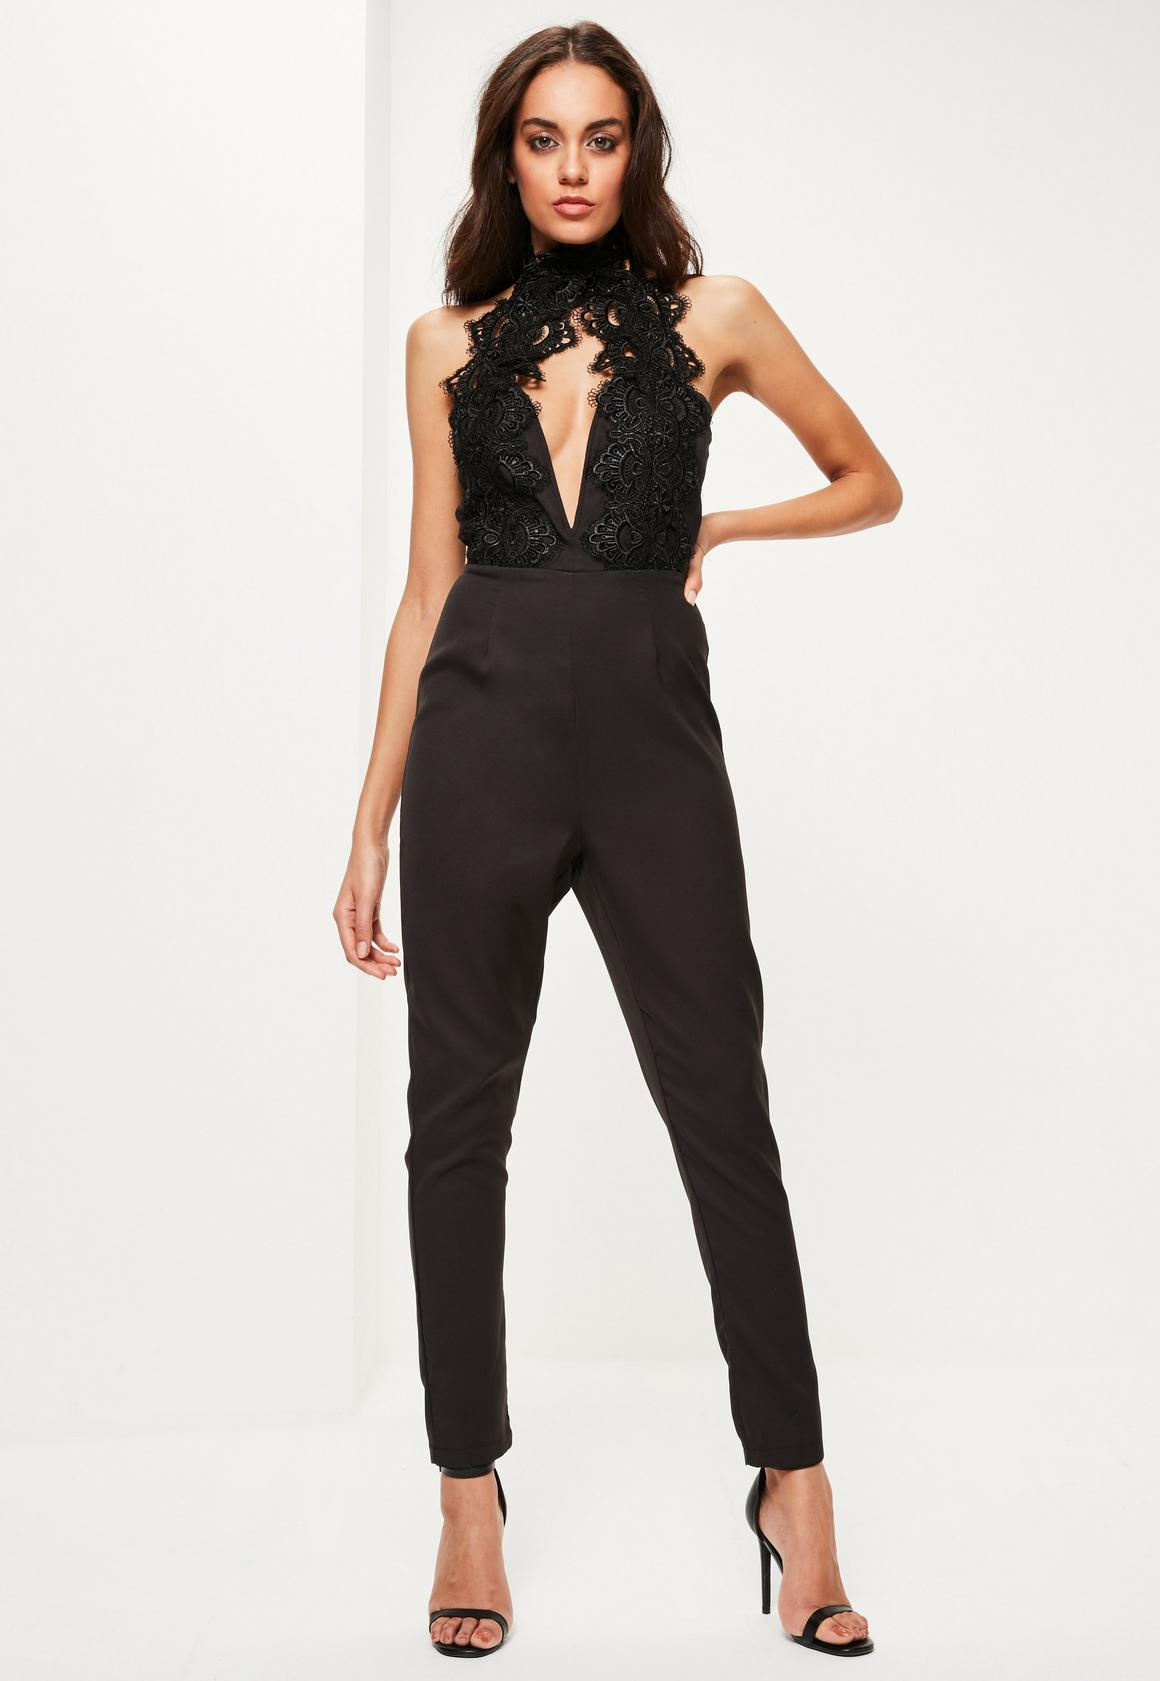 Black Lace Applique High Neck Plunge Jumpsuit - Missguided